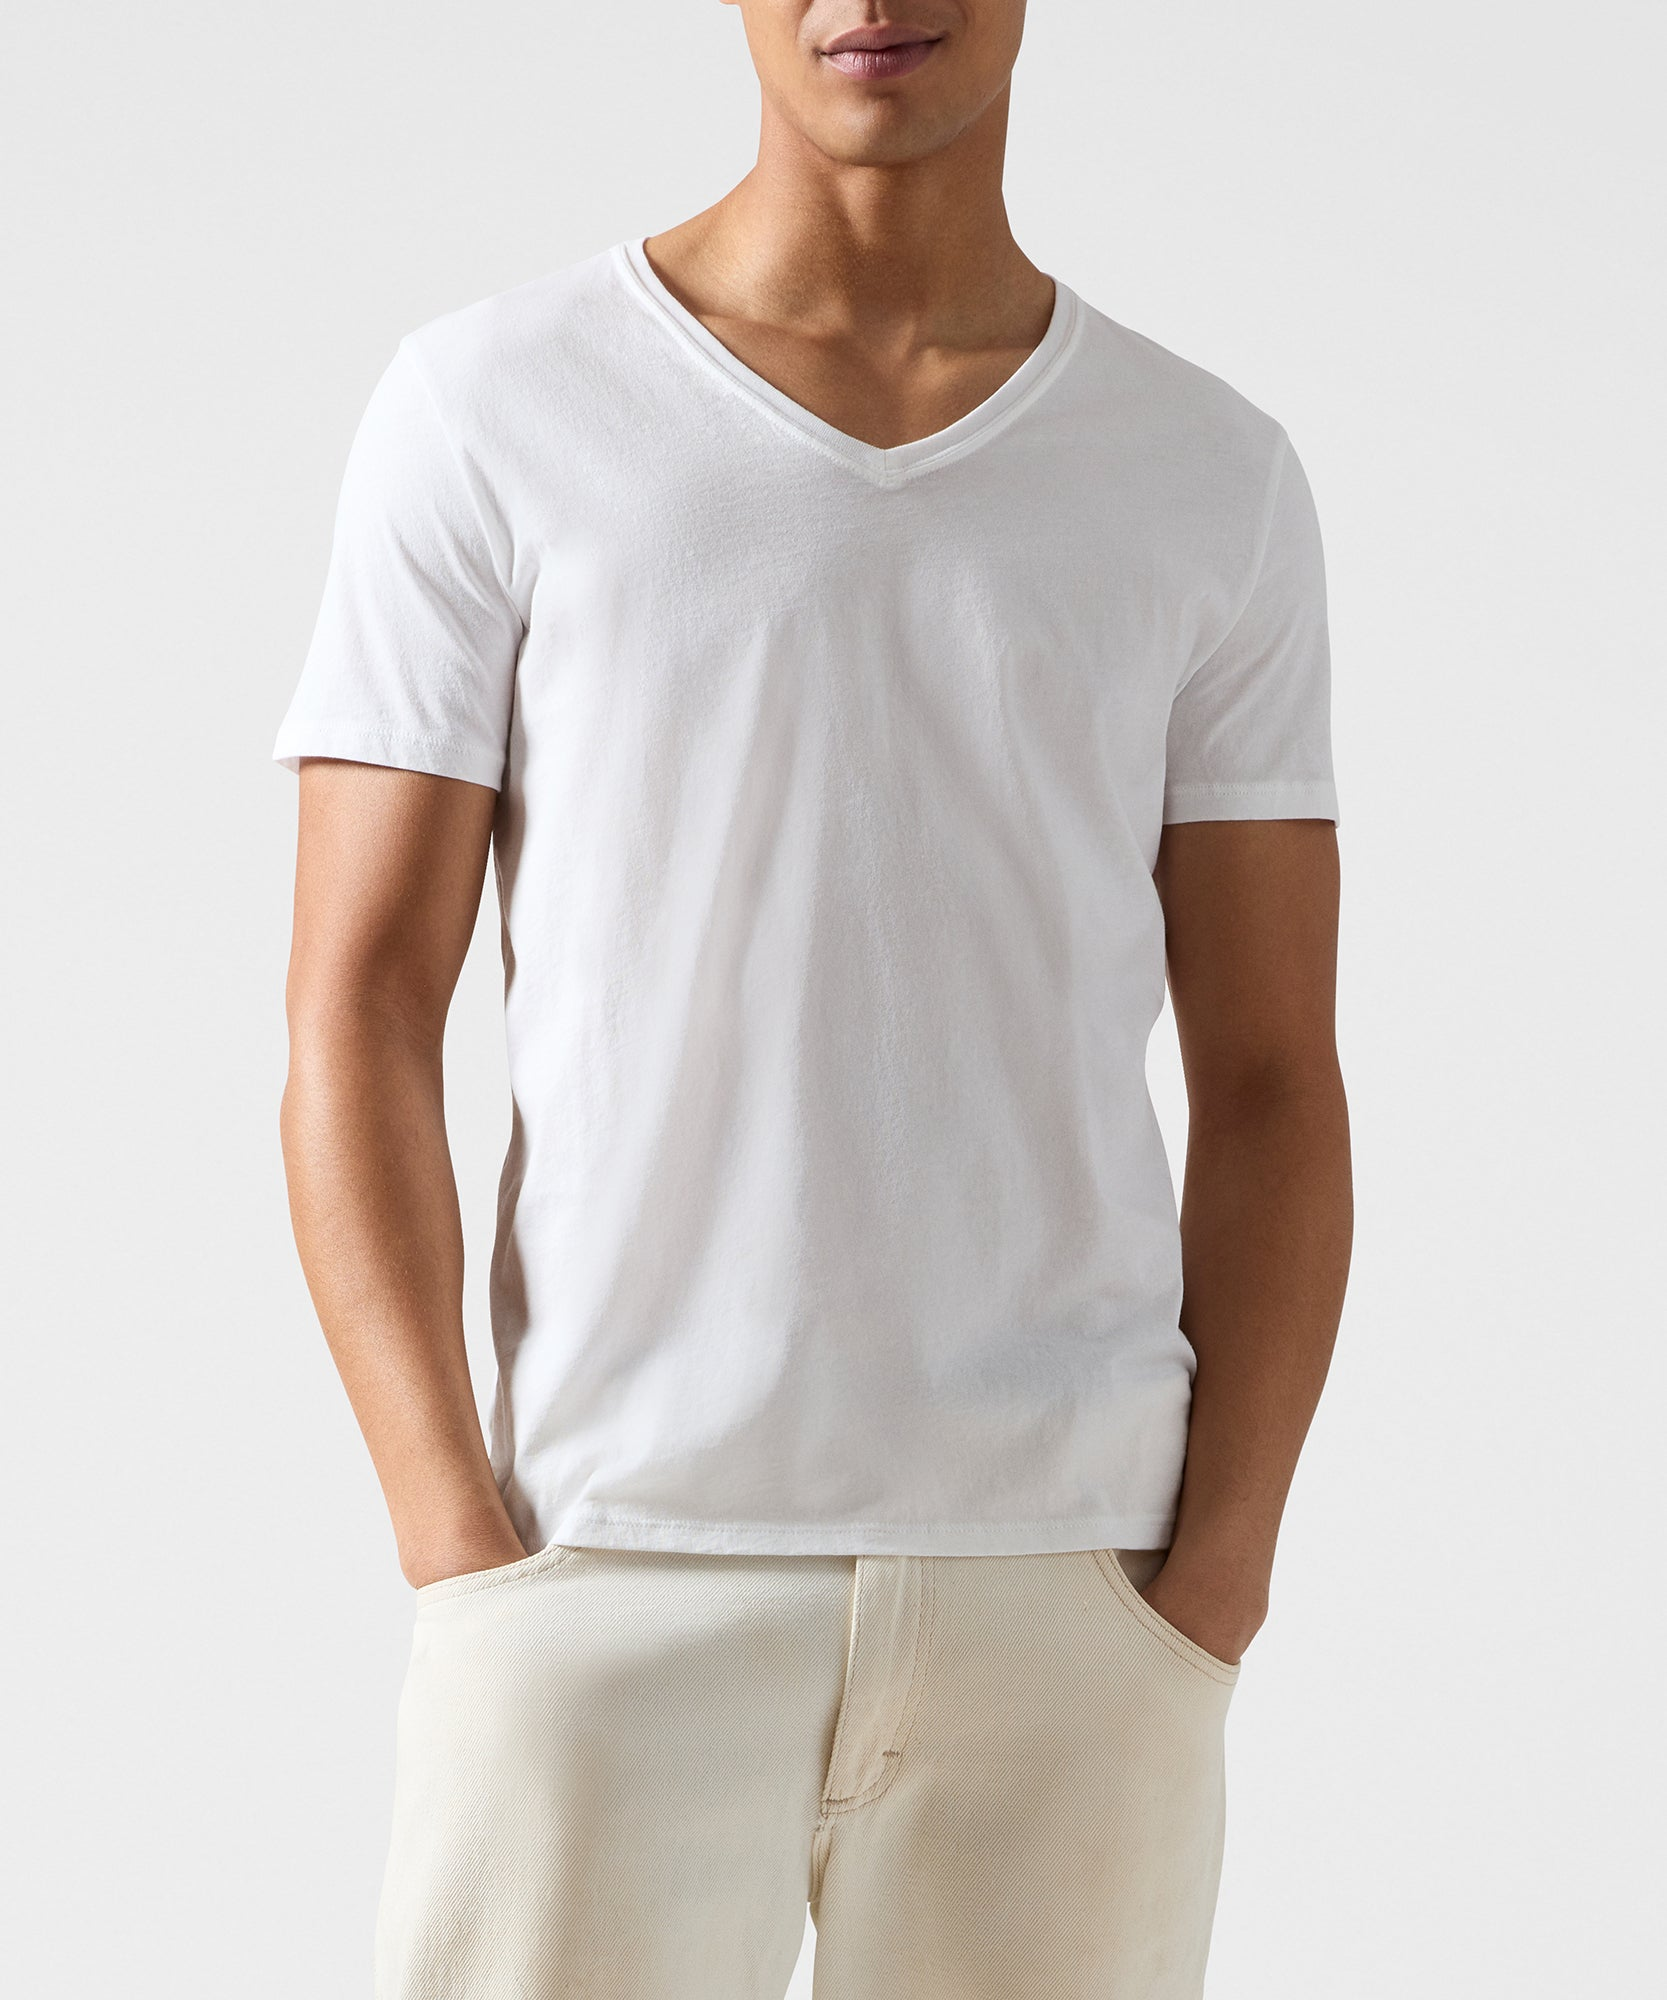 White Classic Jersey V-Neck Tee - Men's Cotton Short Sleeve T-shirt by ATM Anthony Thomas Melillo